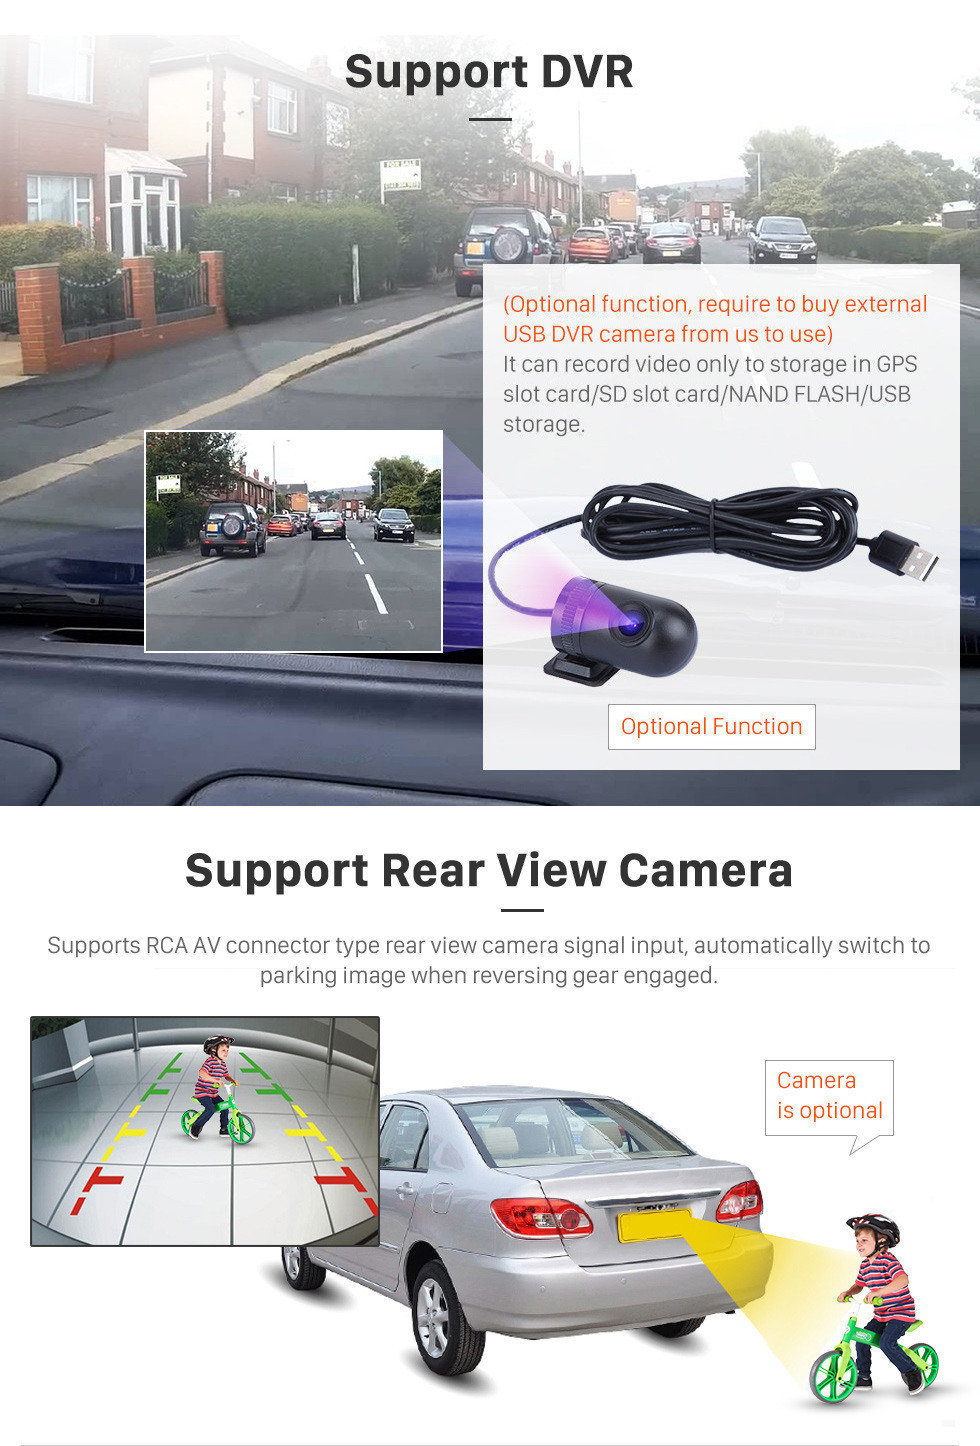 Seicane 9 inch Android 9.0 GPS navigation system for 2006-2011 Toyota COROLLA with Bluetooth Radio HD 1024*600 touch screen OBD2 DVR TV 1080P Video 3G WIFI  Steering Wheel Control  USB SD backup camera  Quad-core CPU Mirror link